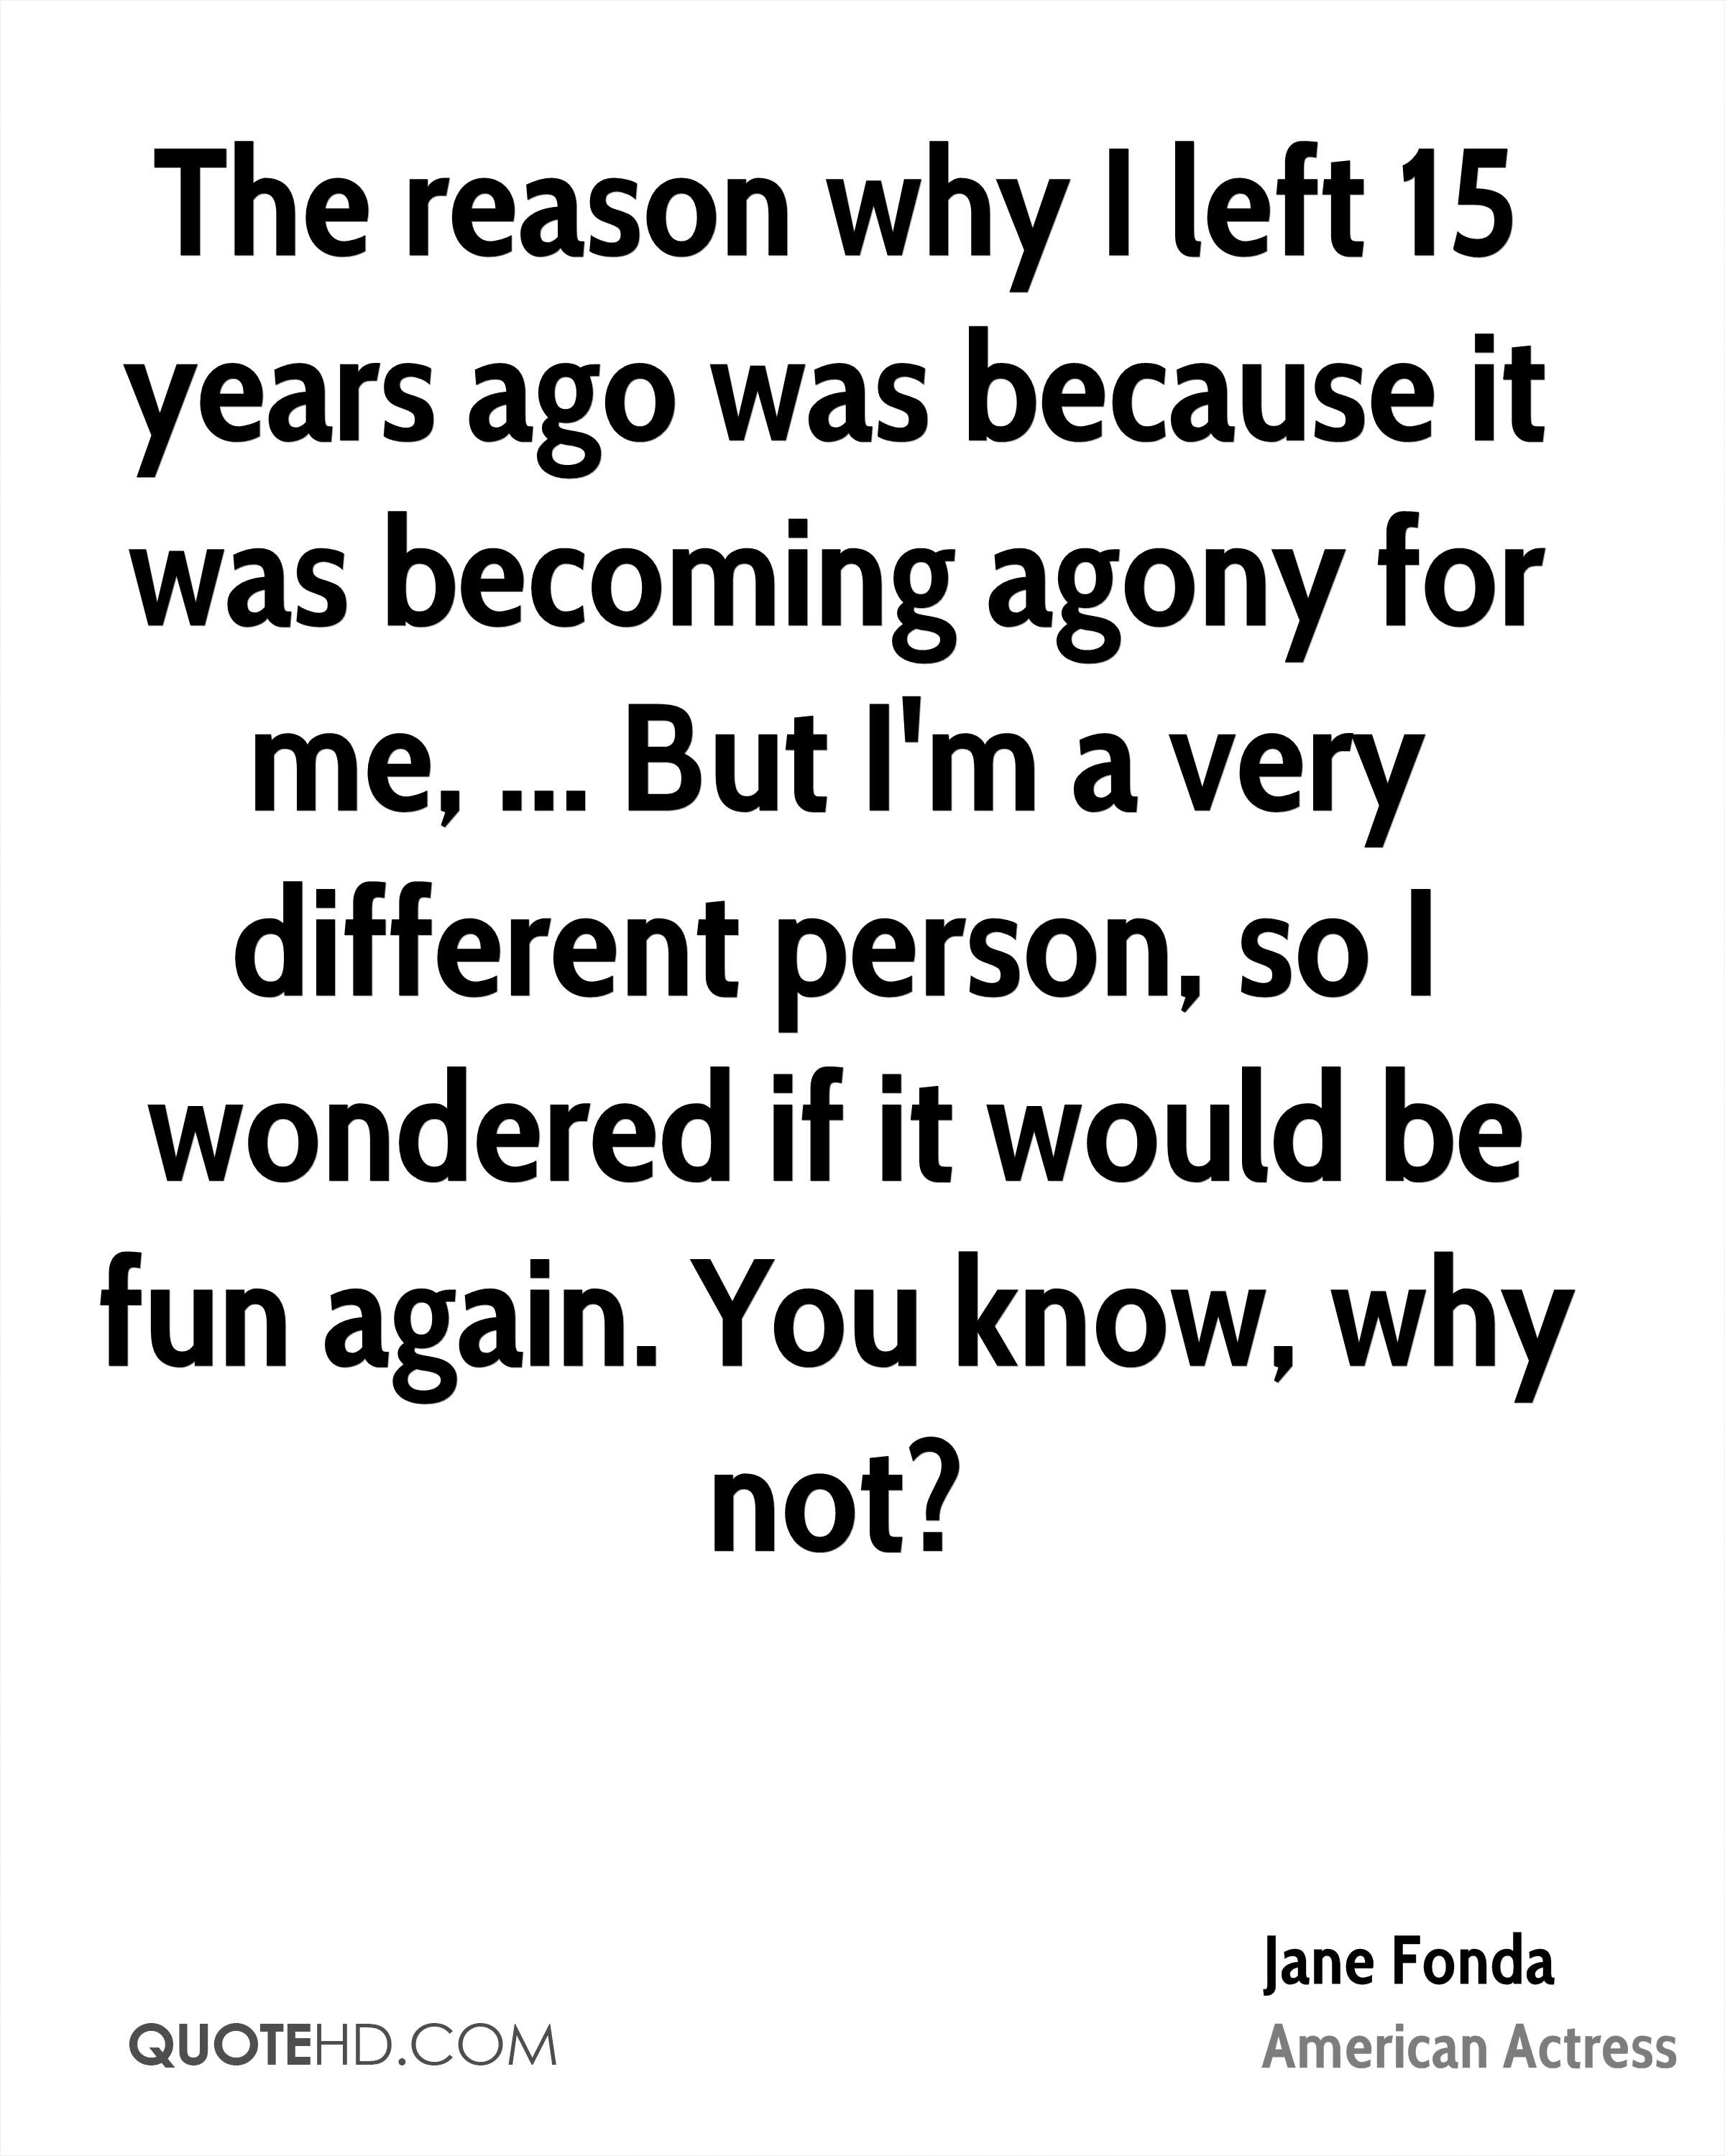 The reason why I left 15 years ago was because it was becoming agony for me, ... But I'm a very different person, so I wondered if it would be fun again. You know, why not?